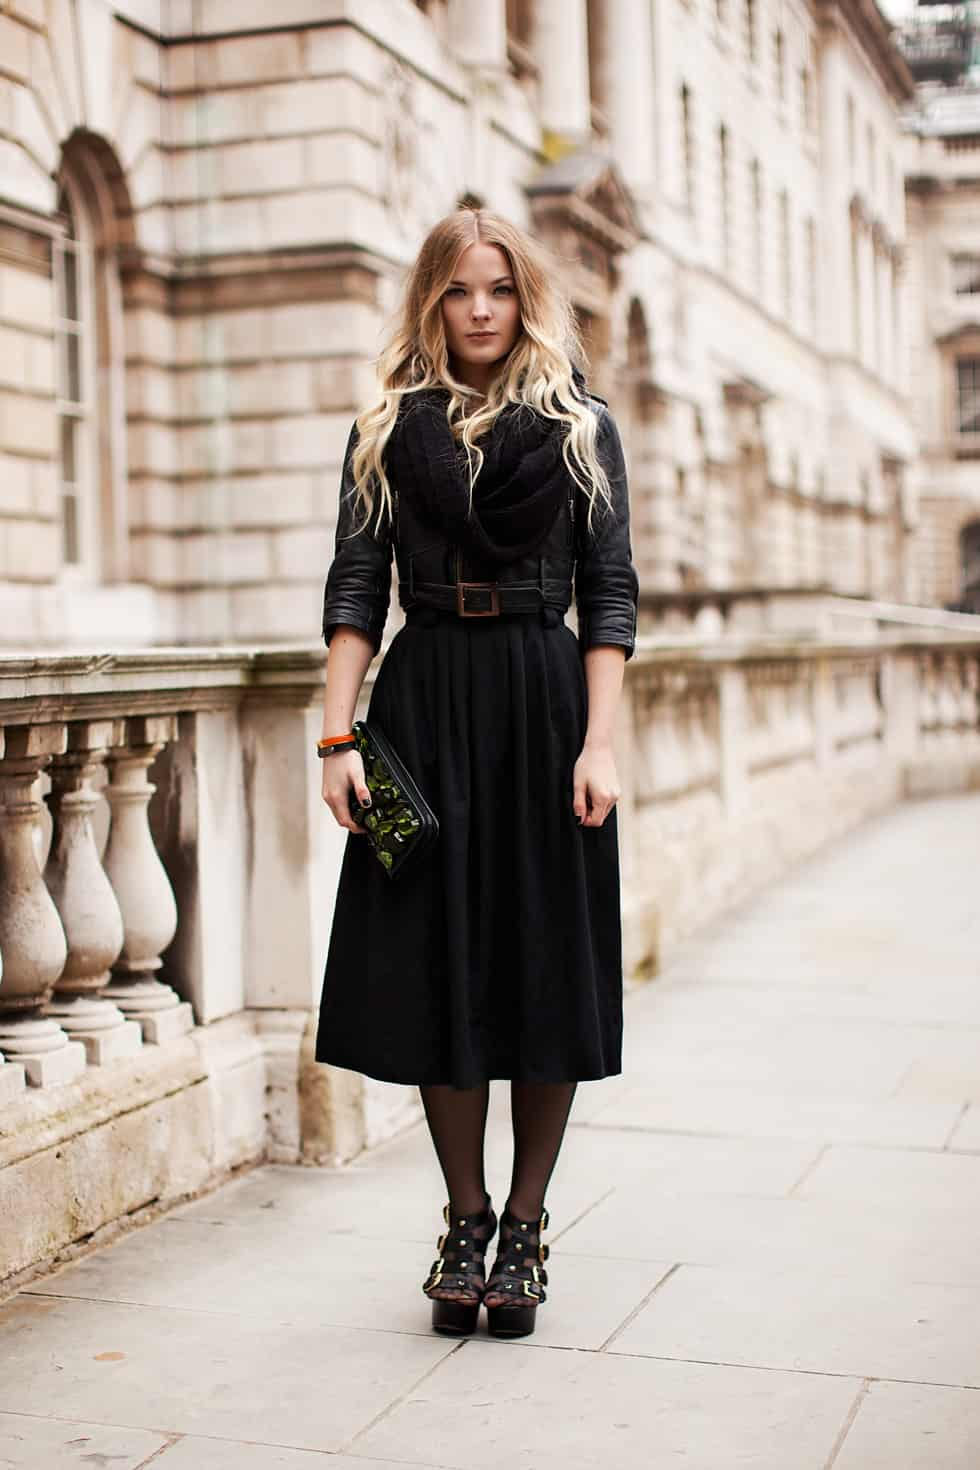 skirts is midi the new mini � the fashion tag blog